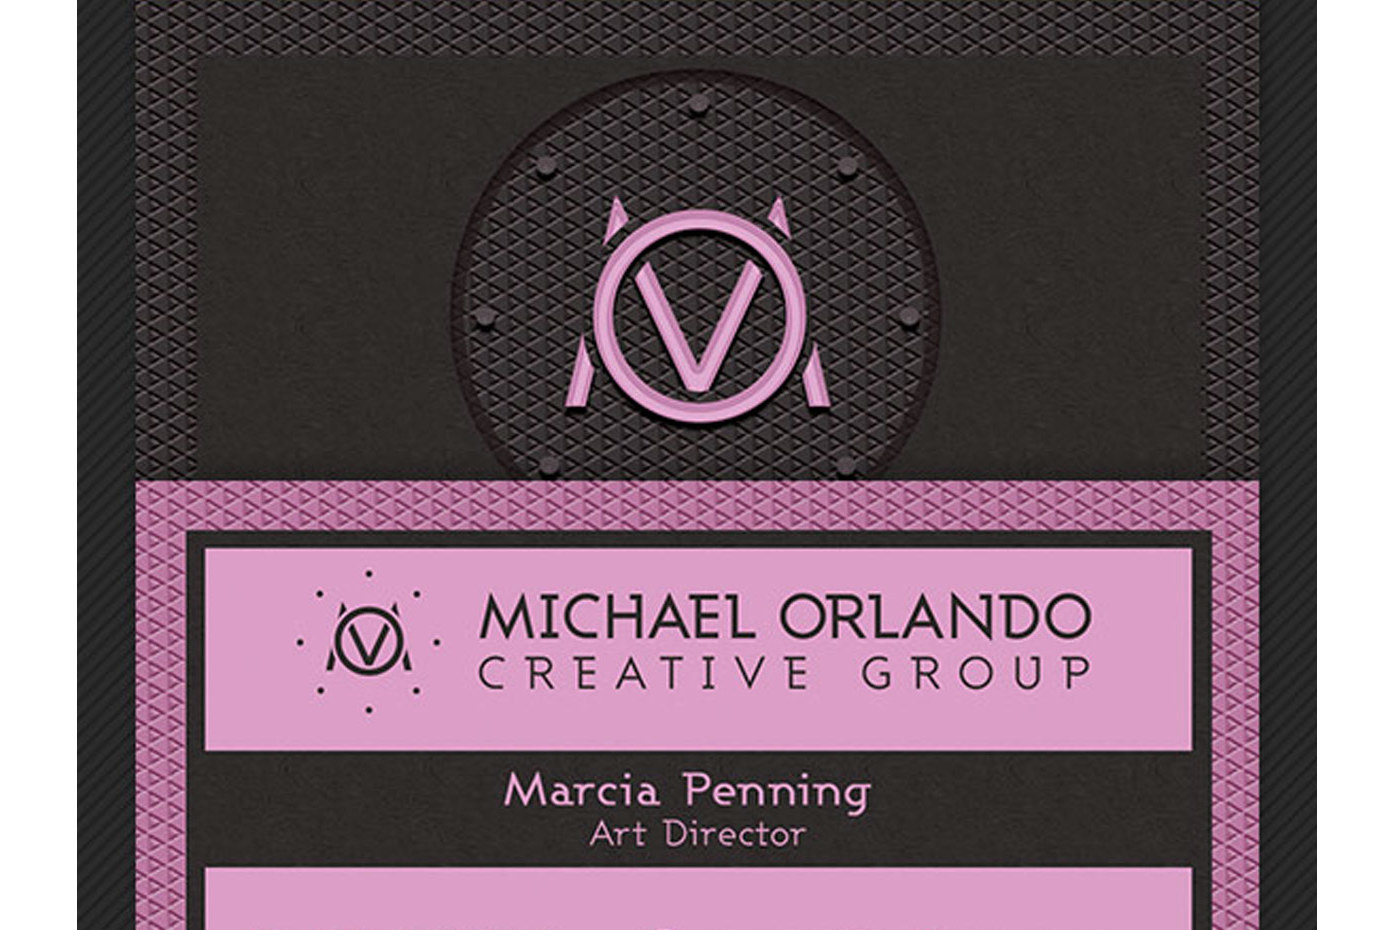 Creative Group Business Card Template example image 6